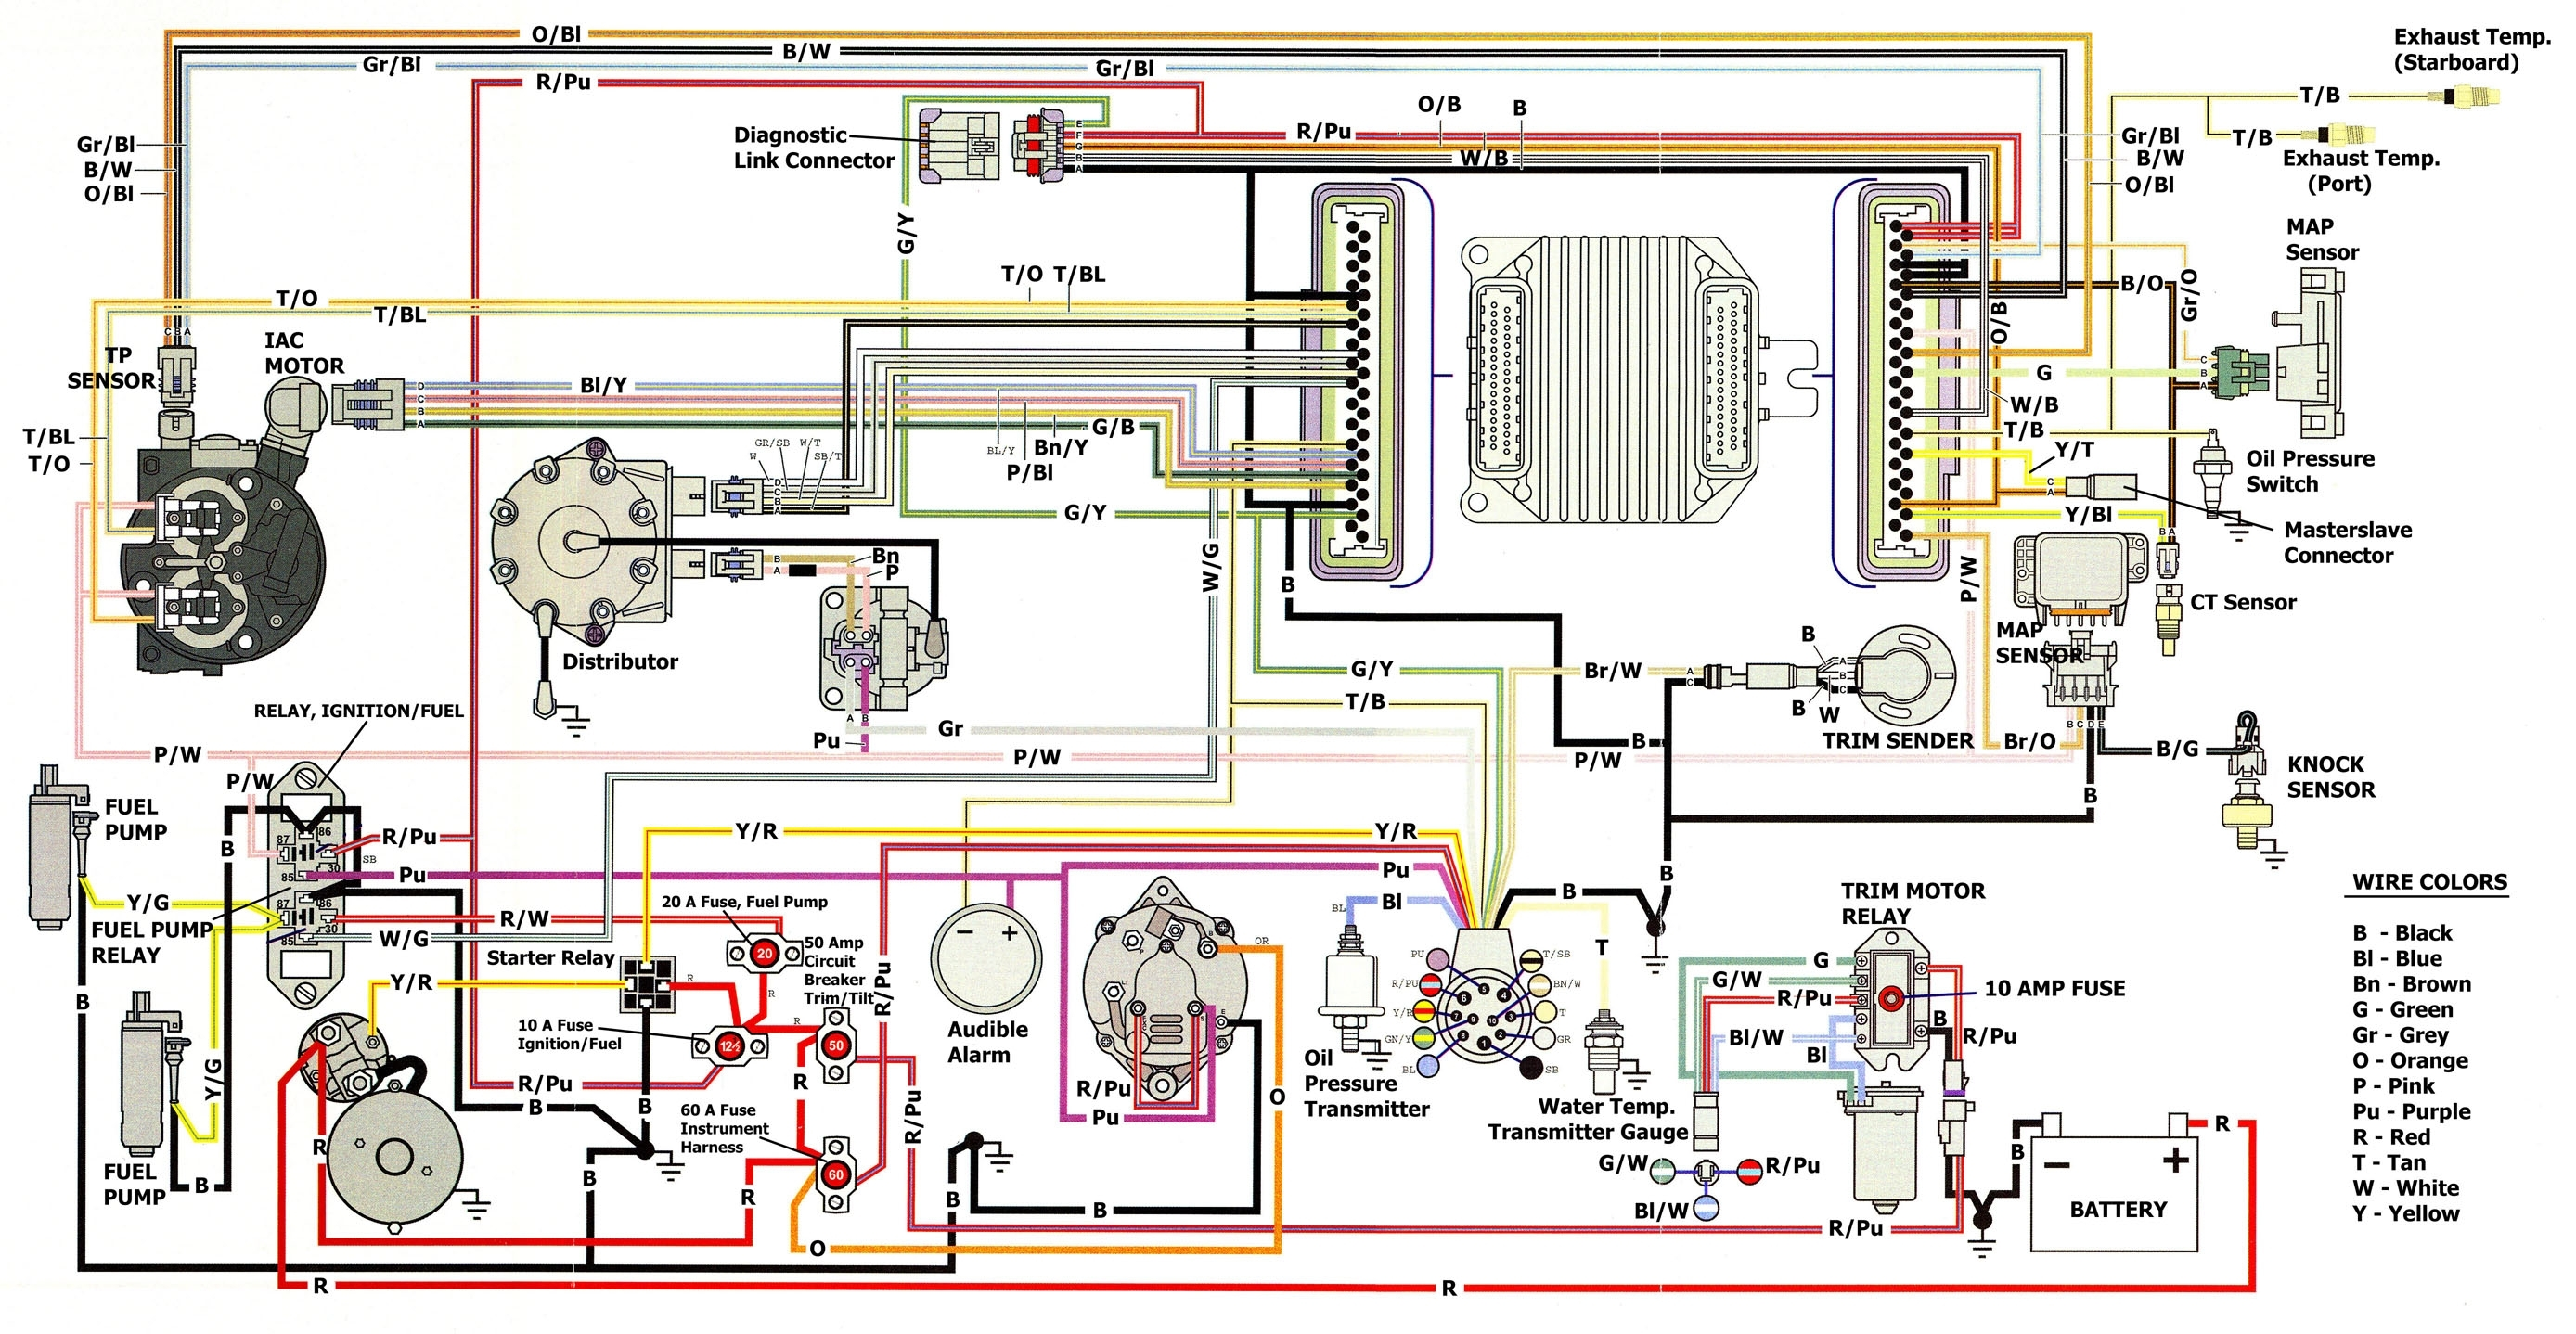 Boat wiring schematics on images fuse box and diagram